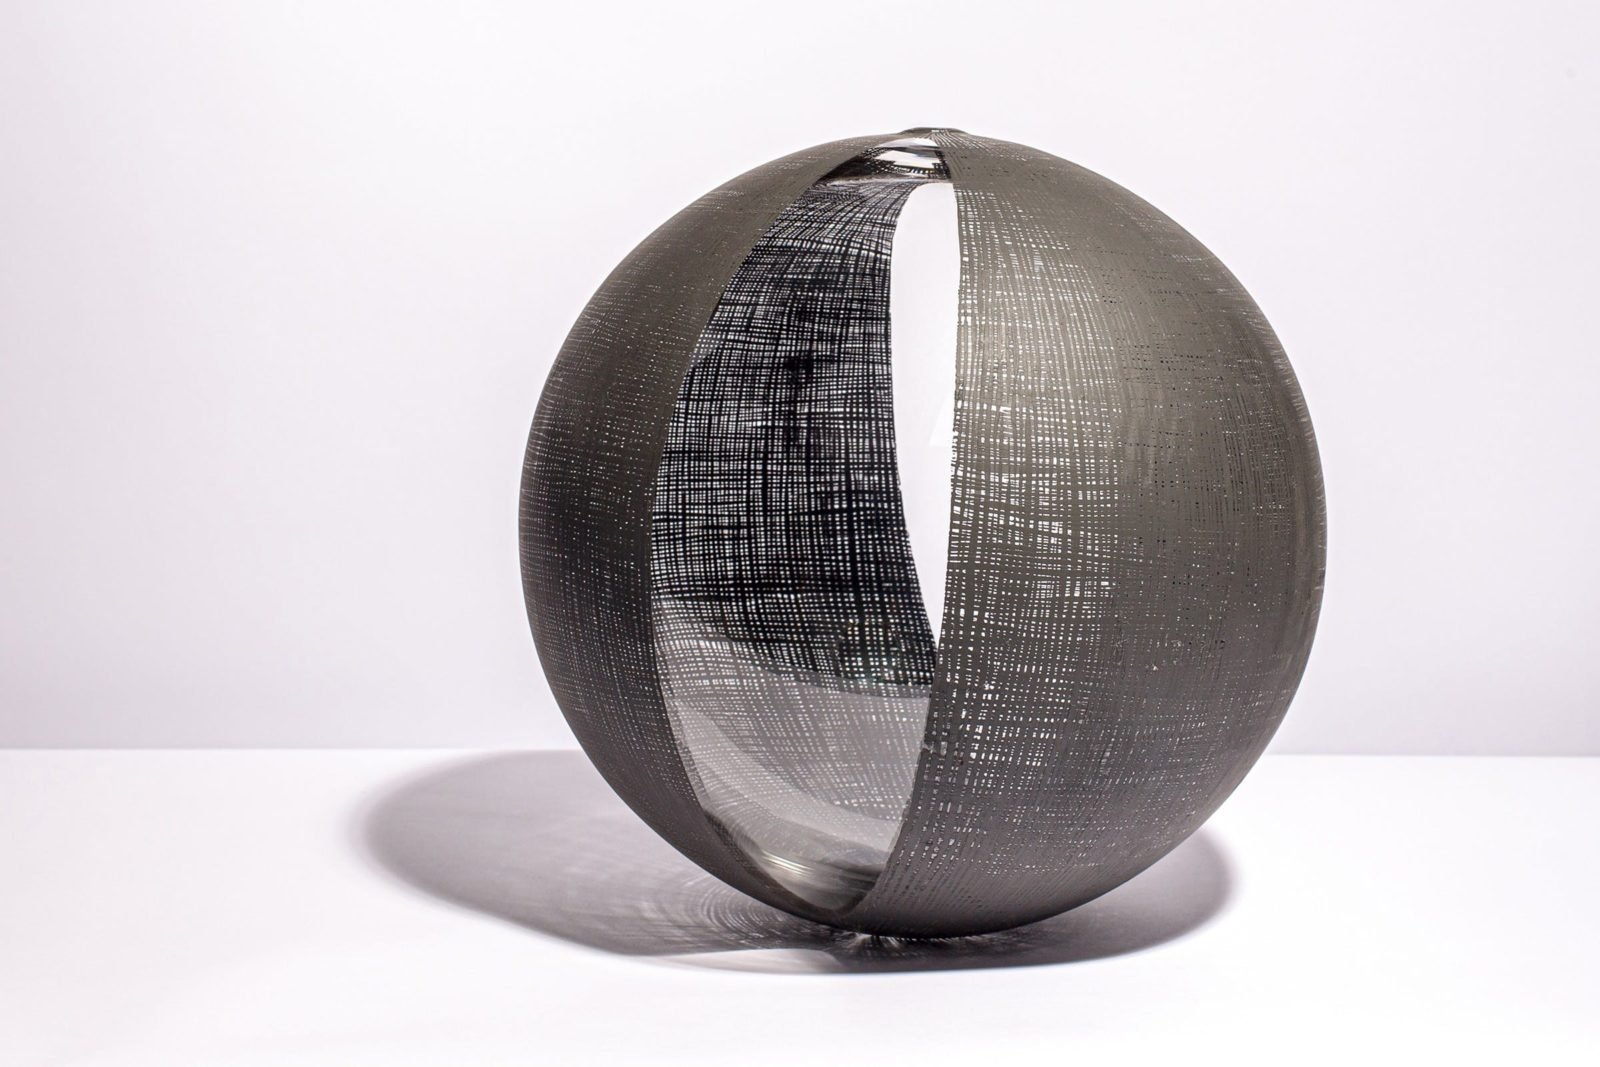 blown glass sphere with black intersecting lines